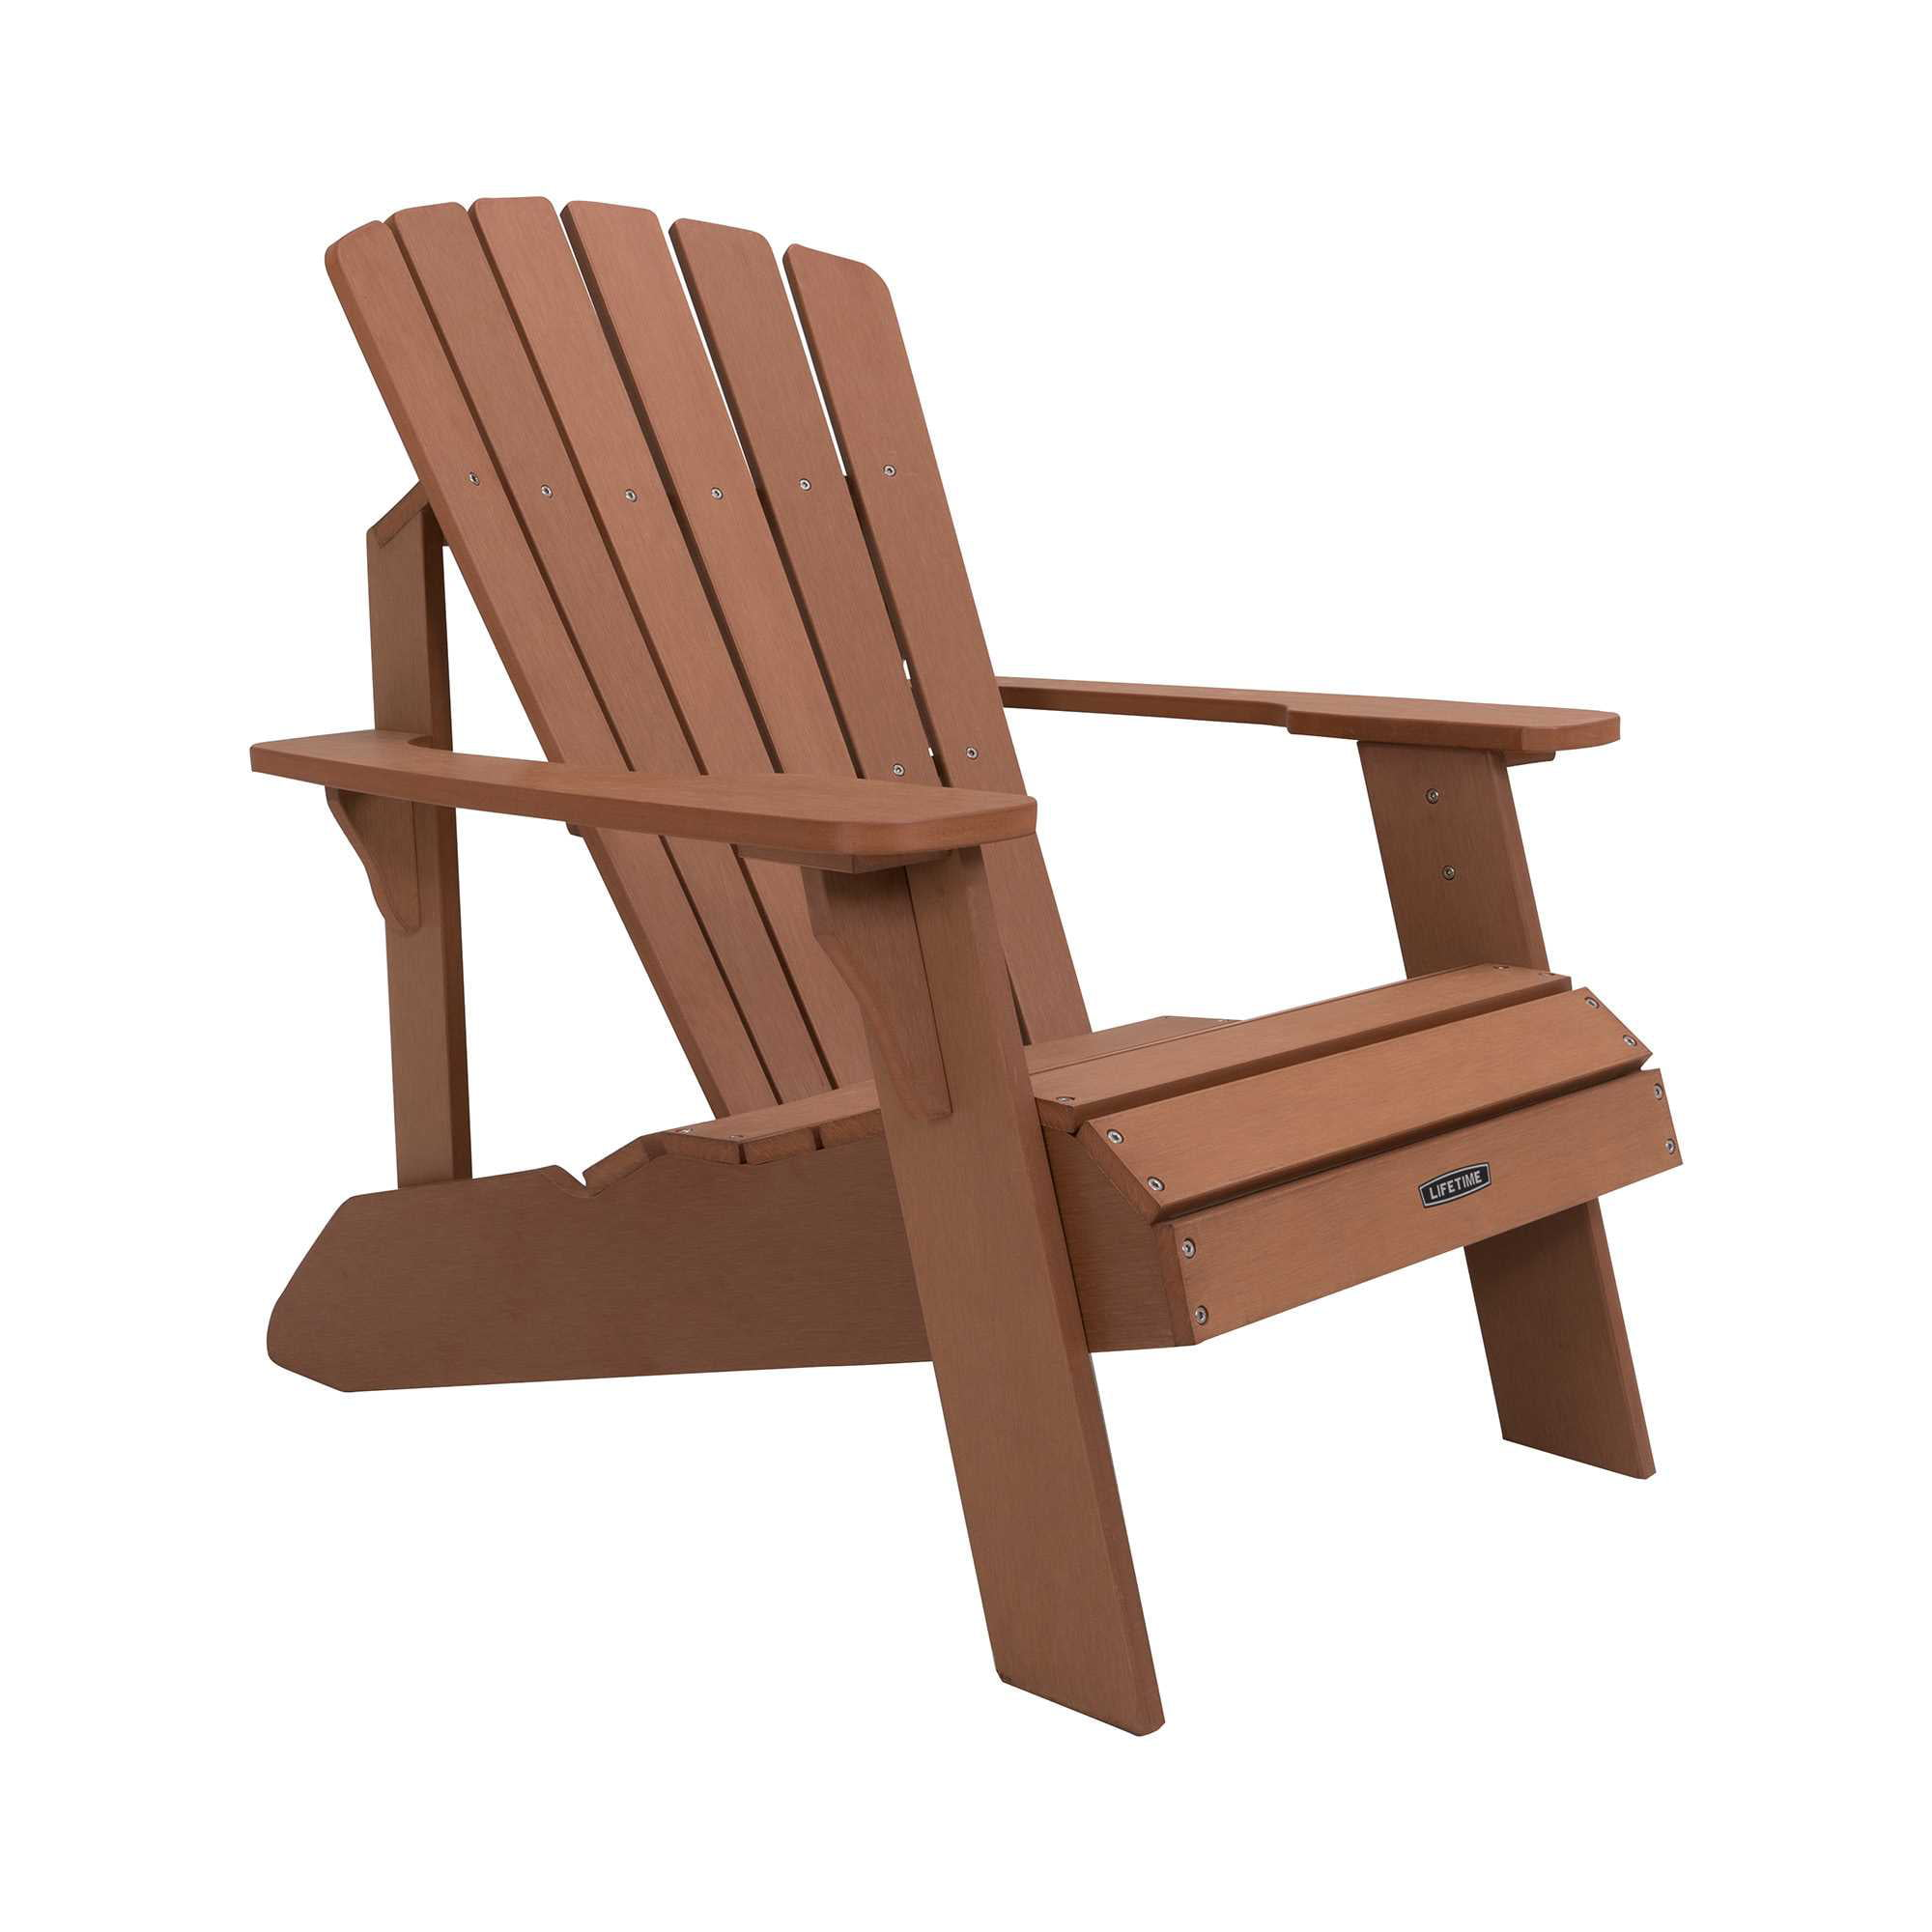 Lifetime Adirondack Chair, Brown, 60064 - Walmart.com